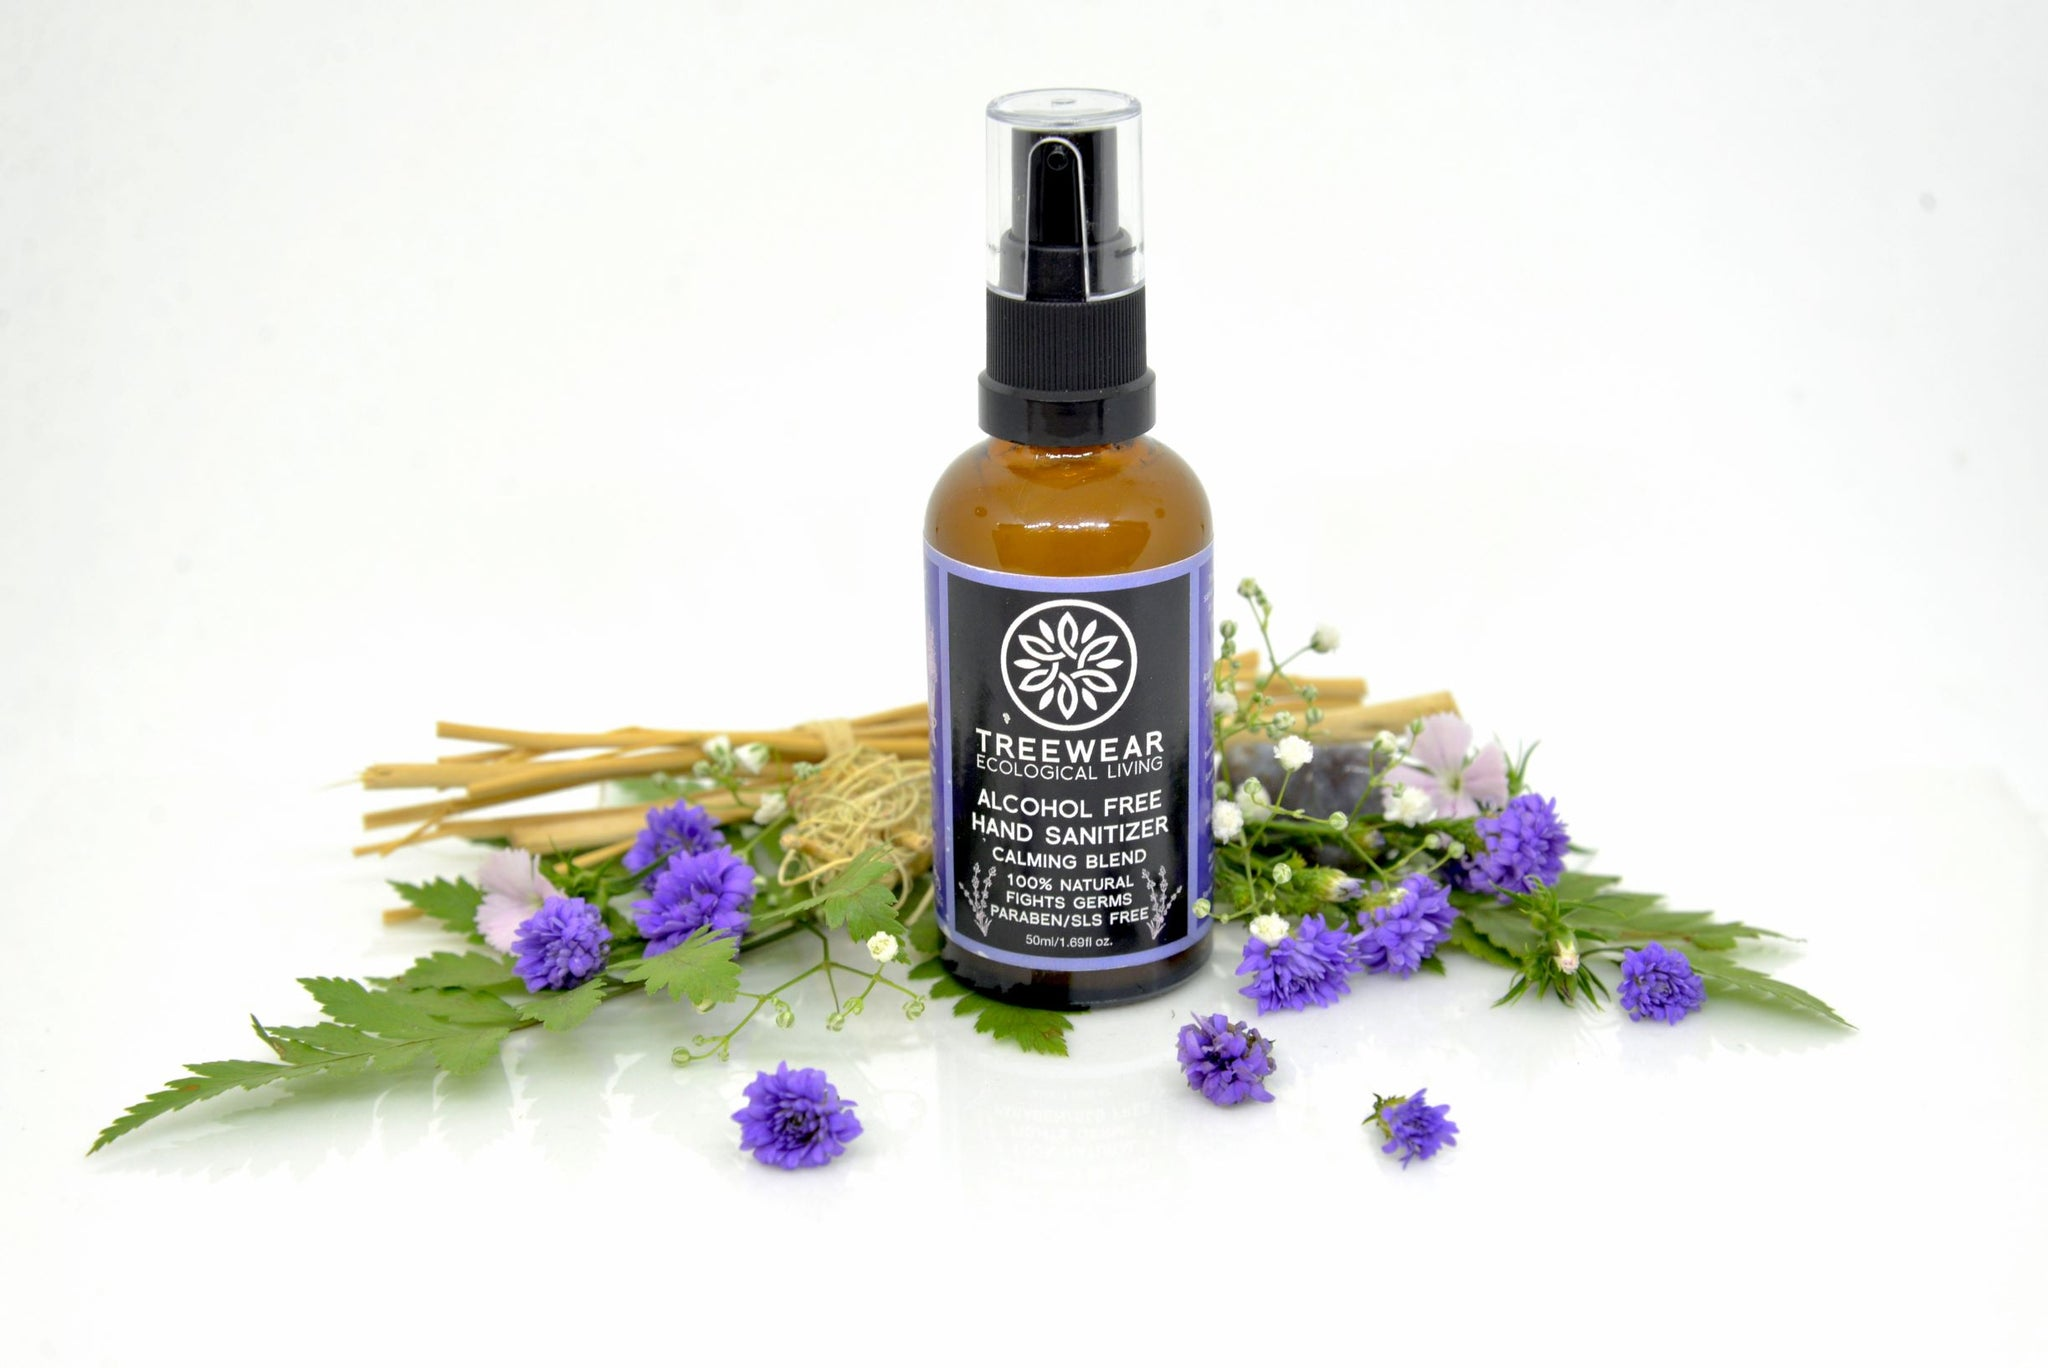 Natural Hand Sanitizer - Calming Blend